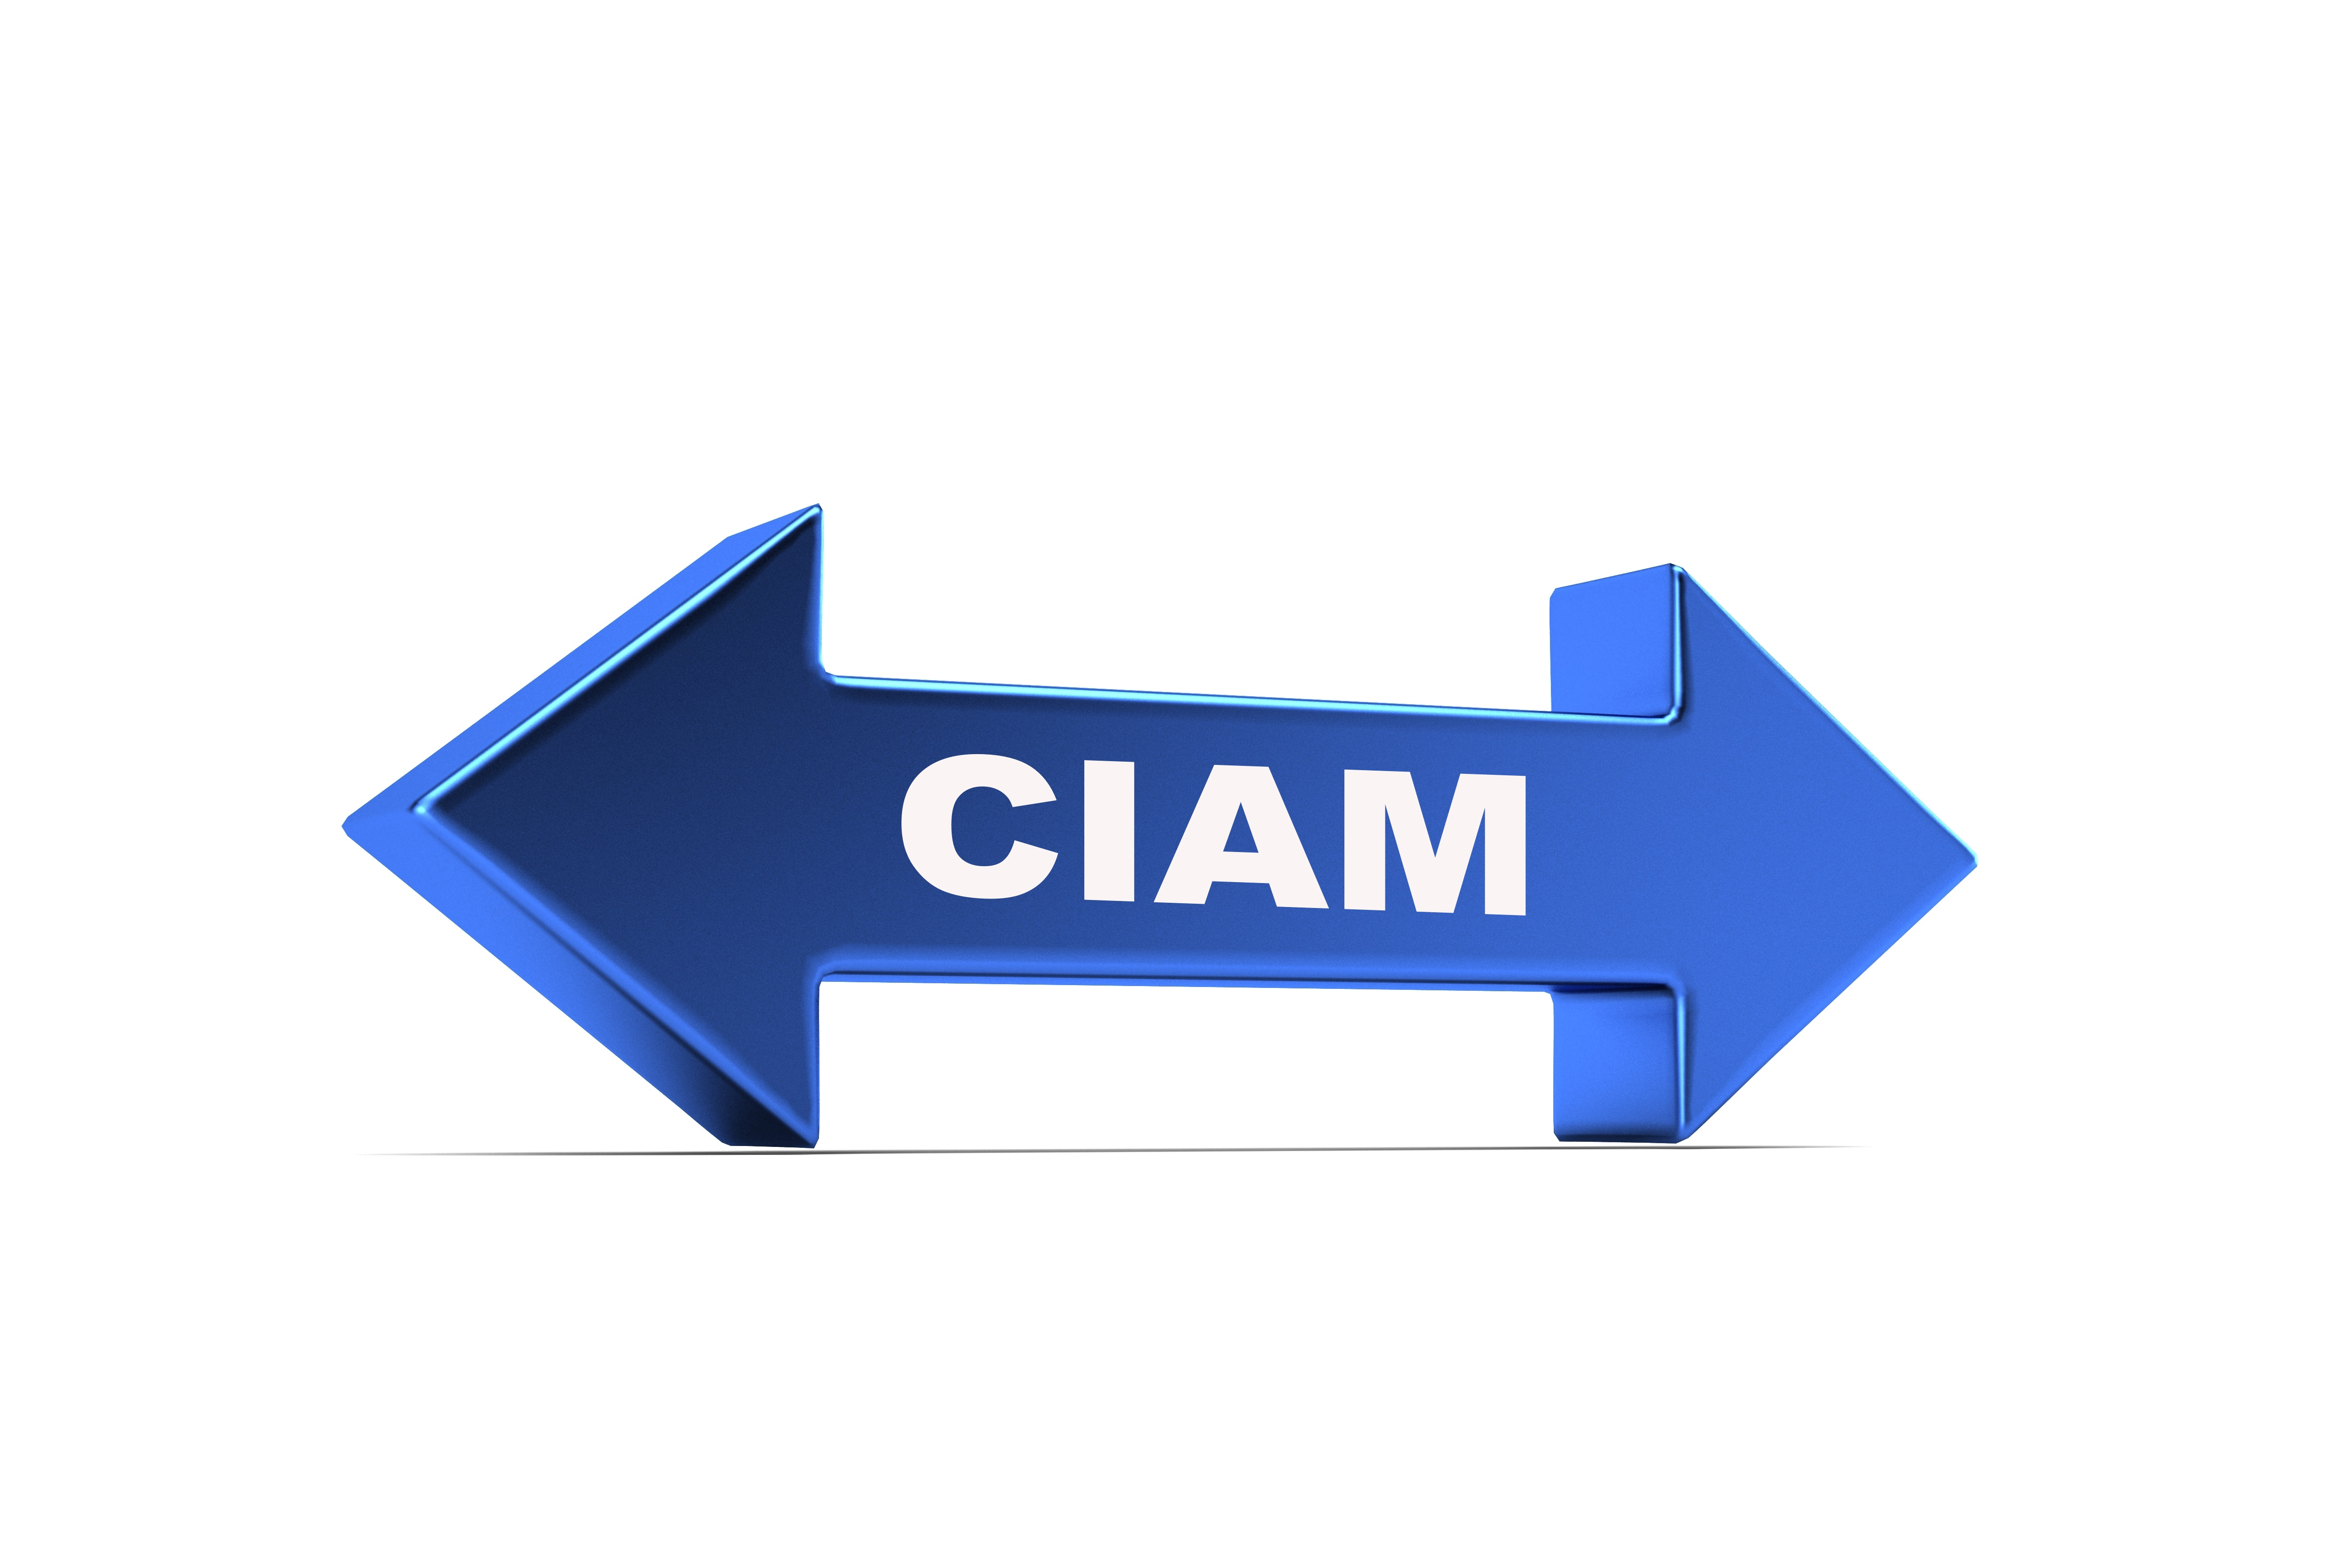 ciam double arrow connecting business outcomes and customer e